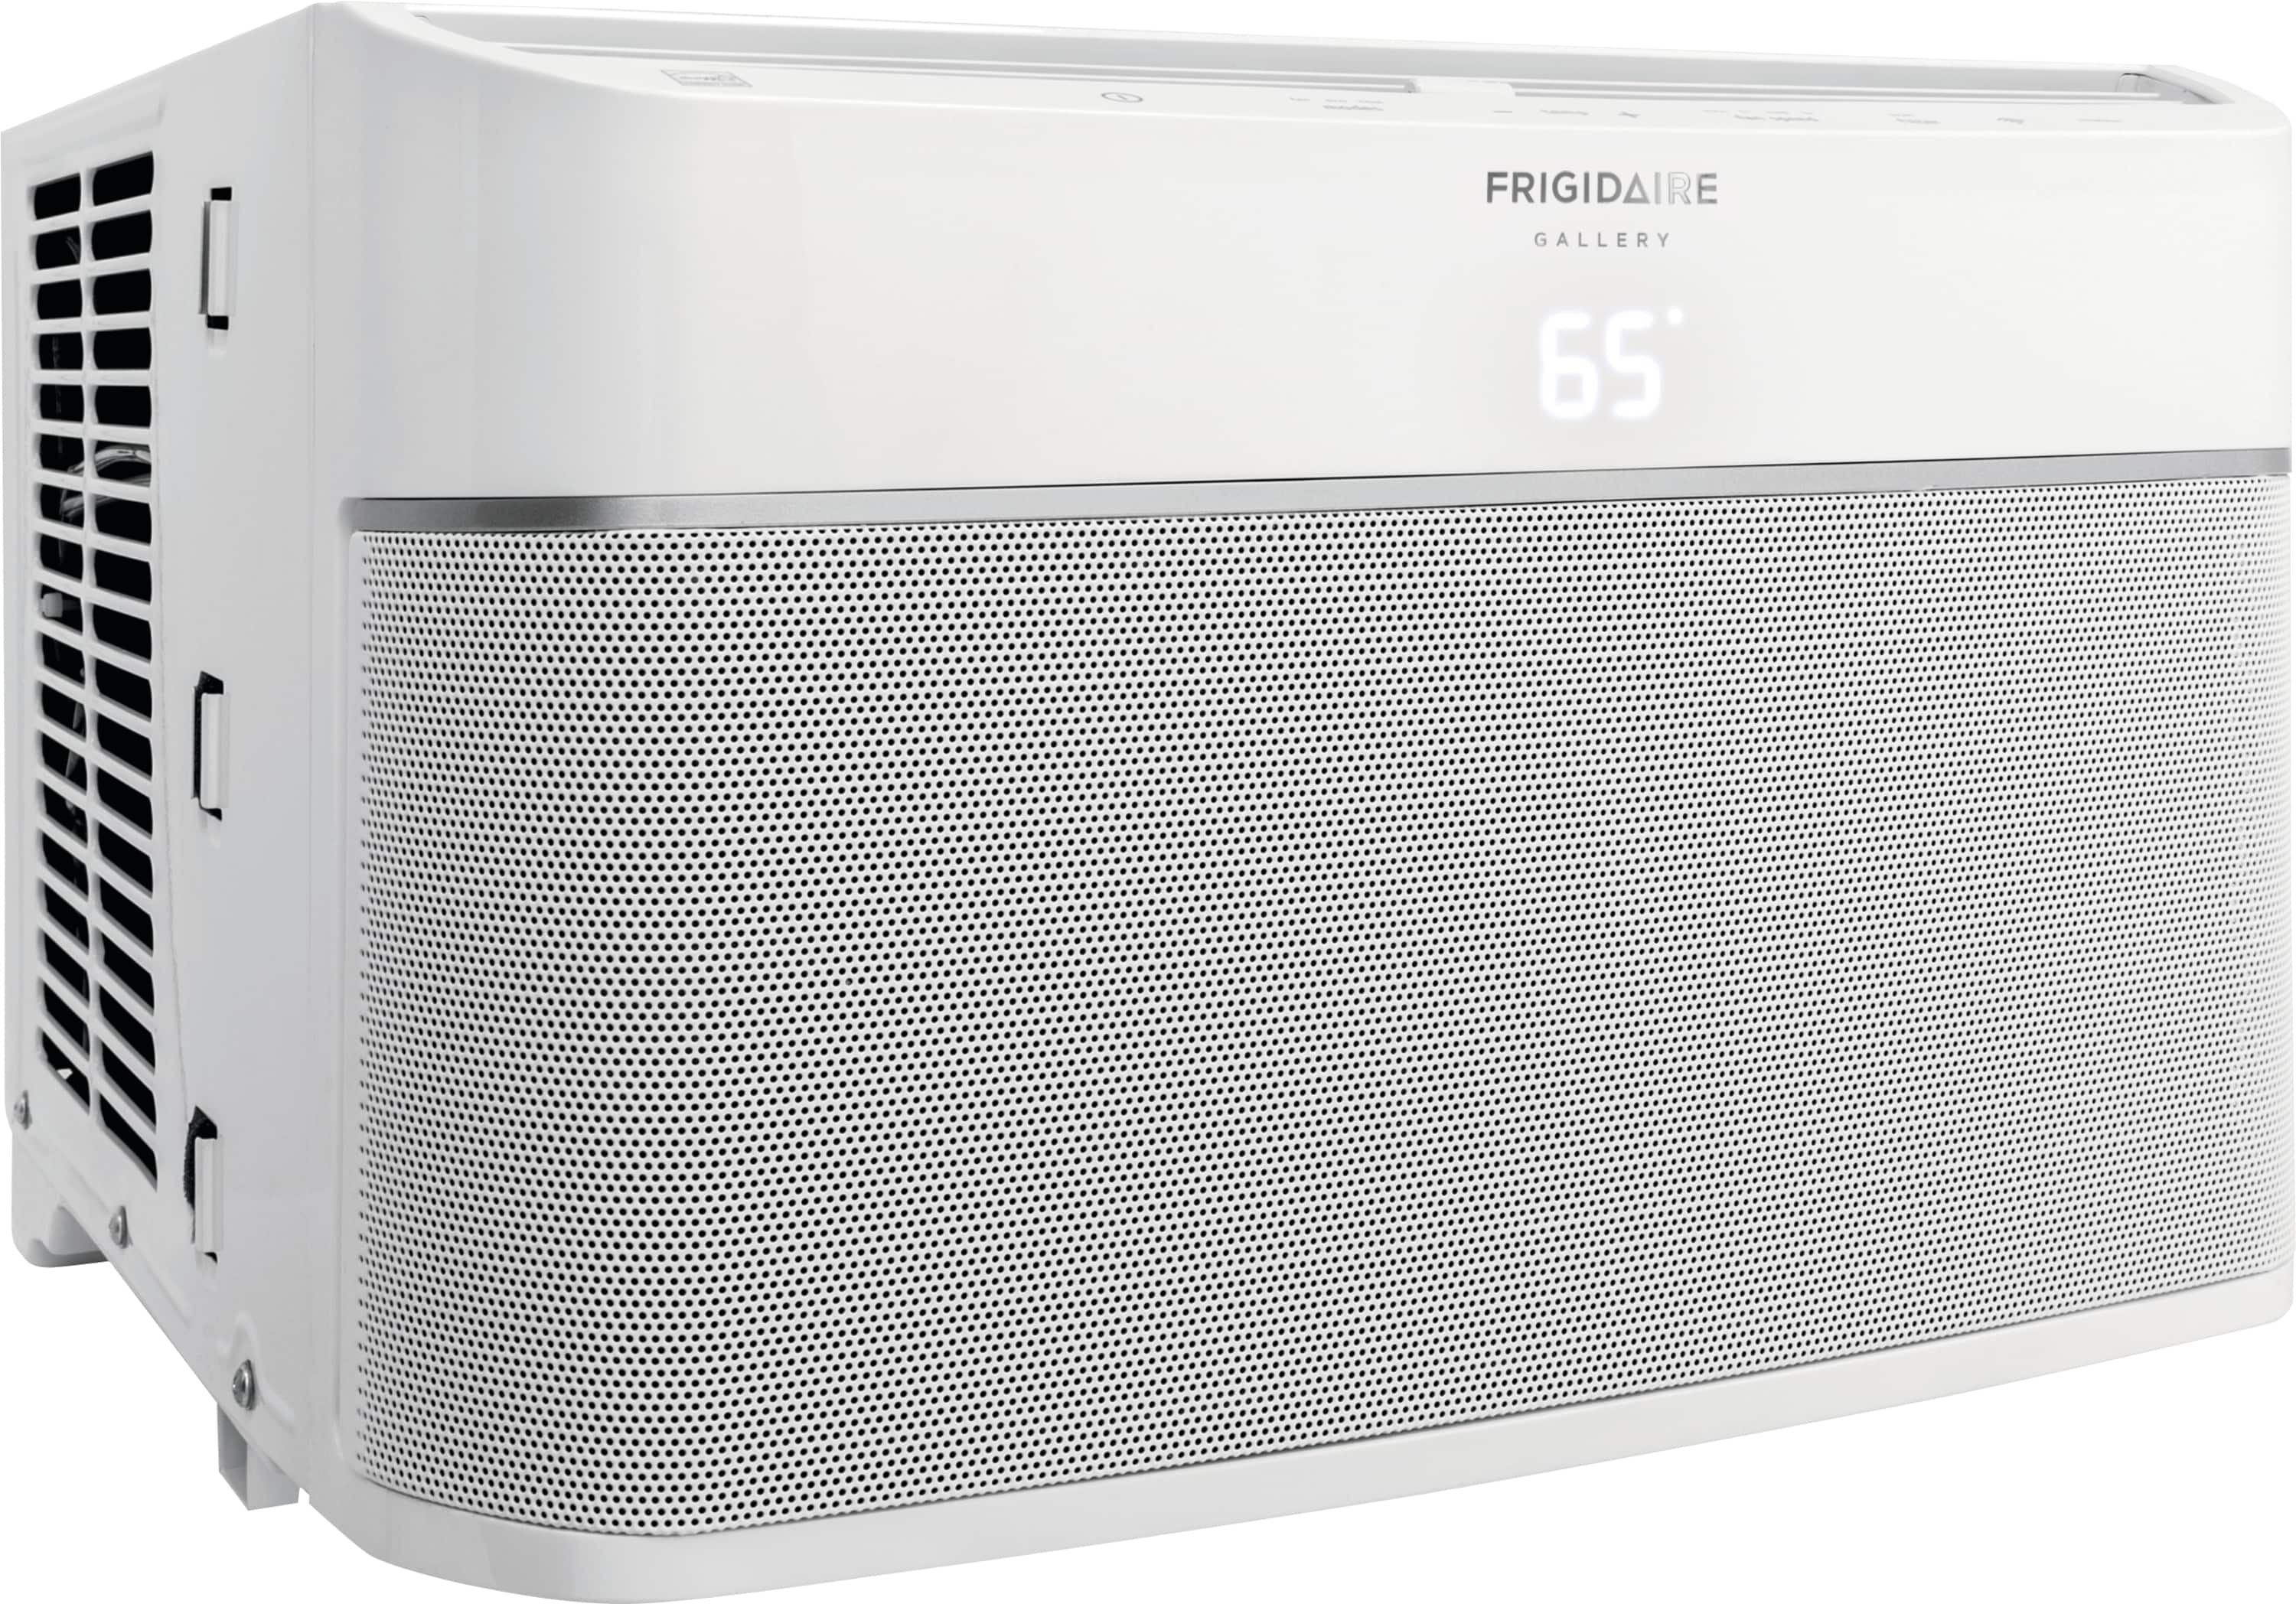 Model: FGRC1244T1 | 12,000 BTU Cool Connect™ Smart Room Air Conditioner with Wifi Control